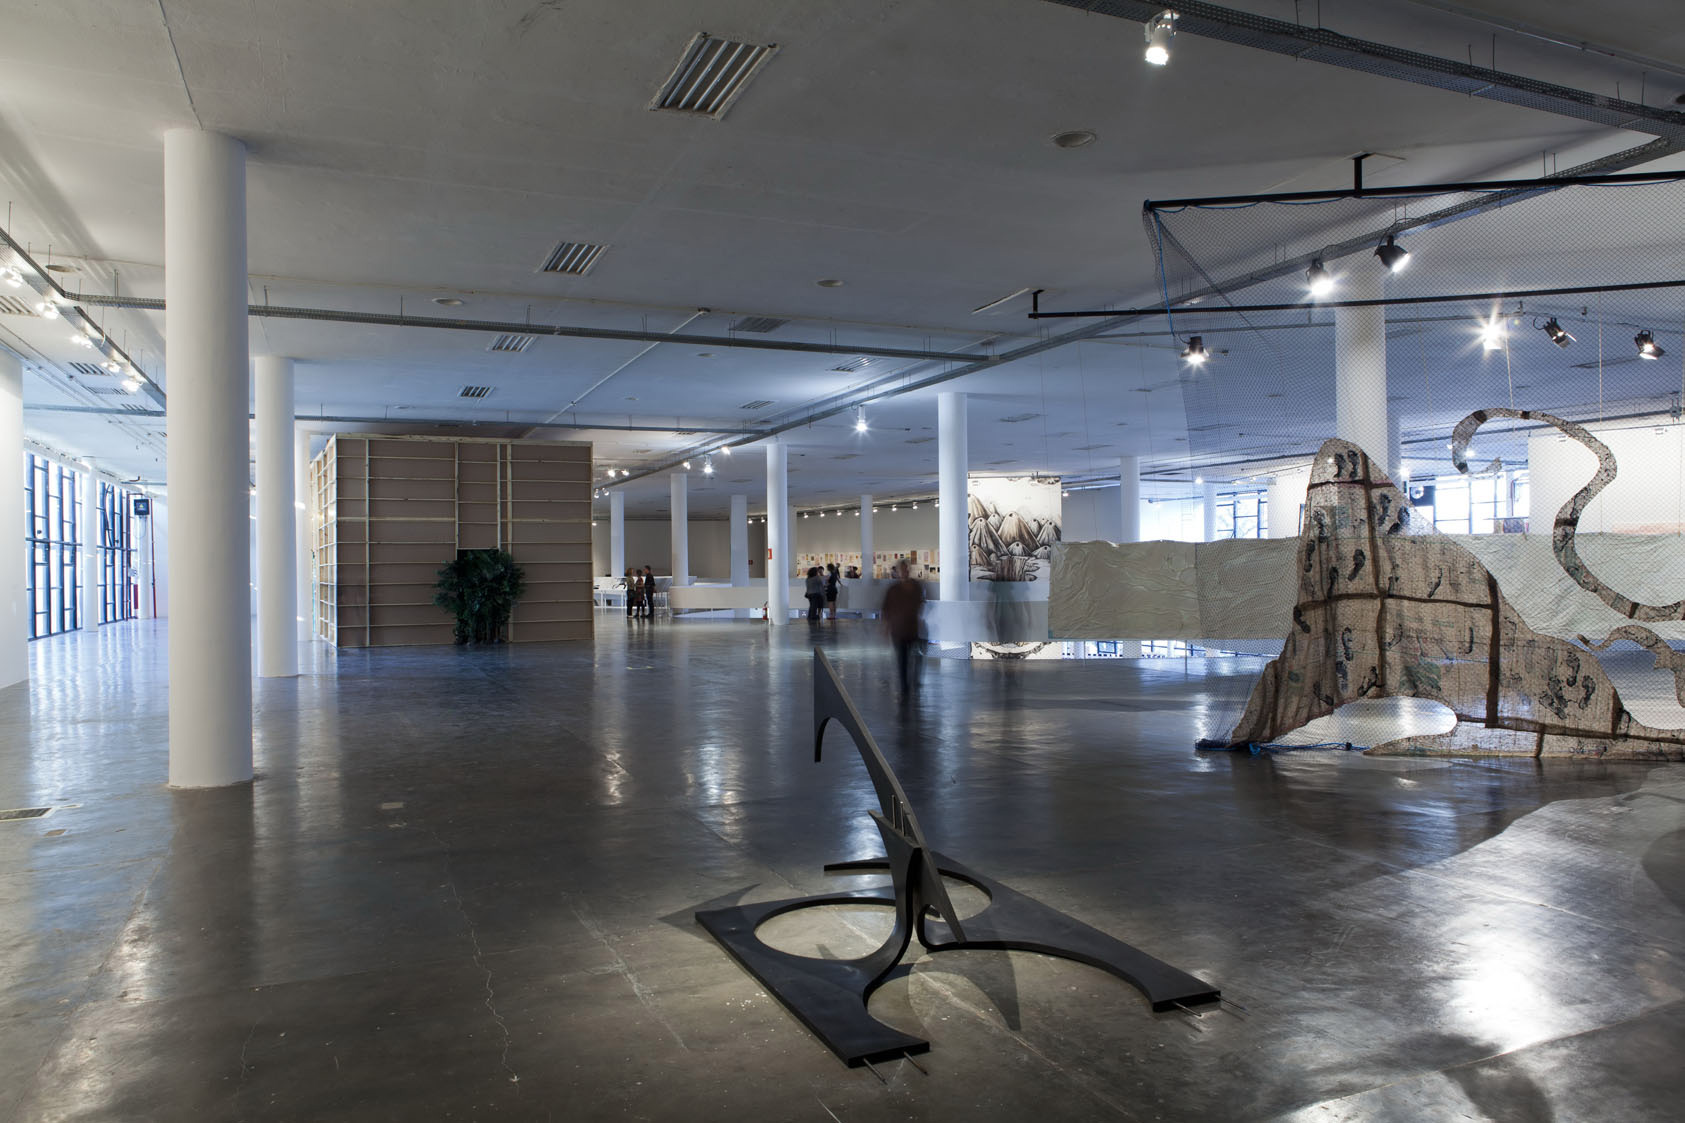 Sculpture AGORAMAQUIA, by Asier Mendizabal, is exhibited at the Sao Paulo Biennial